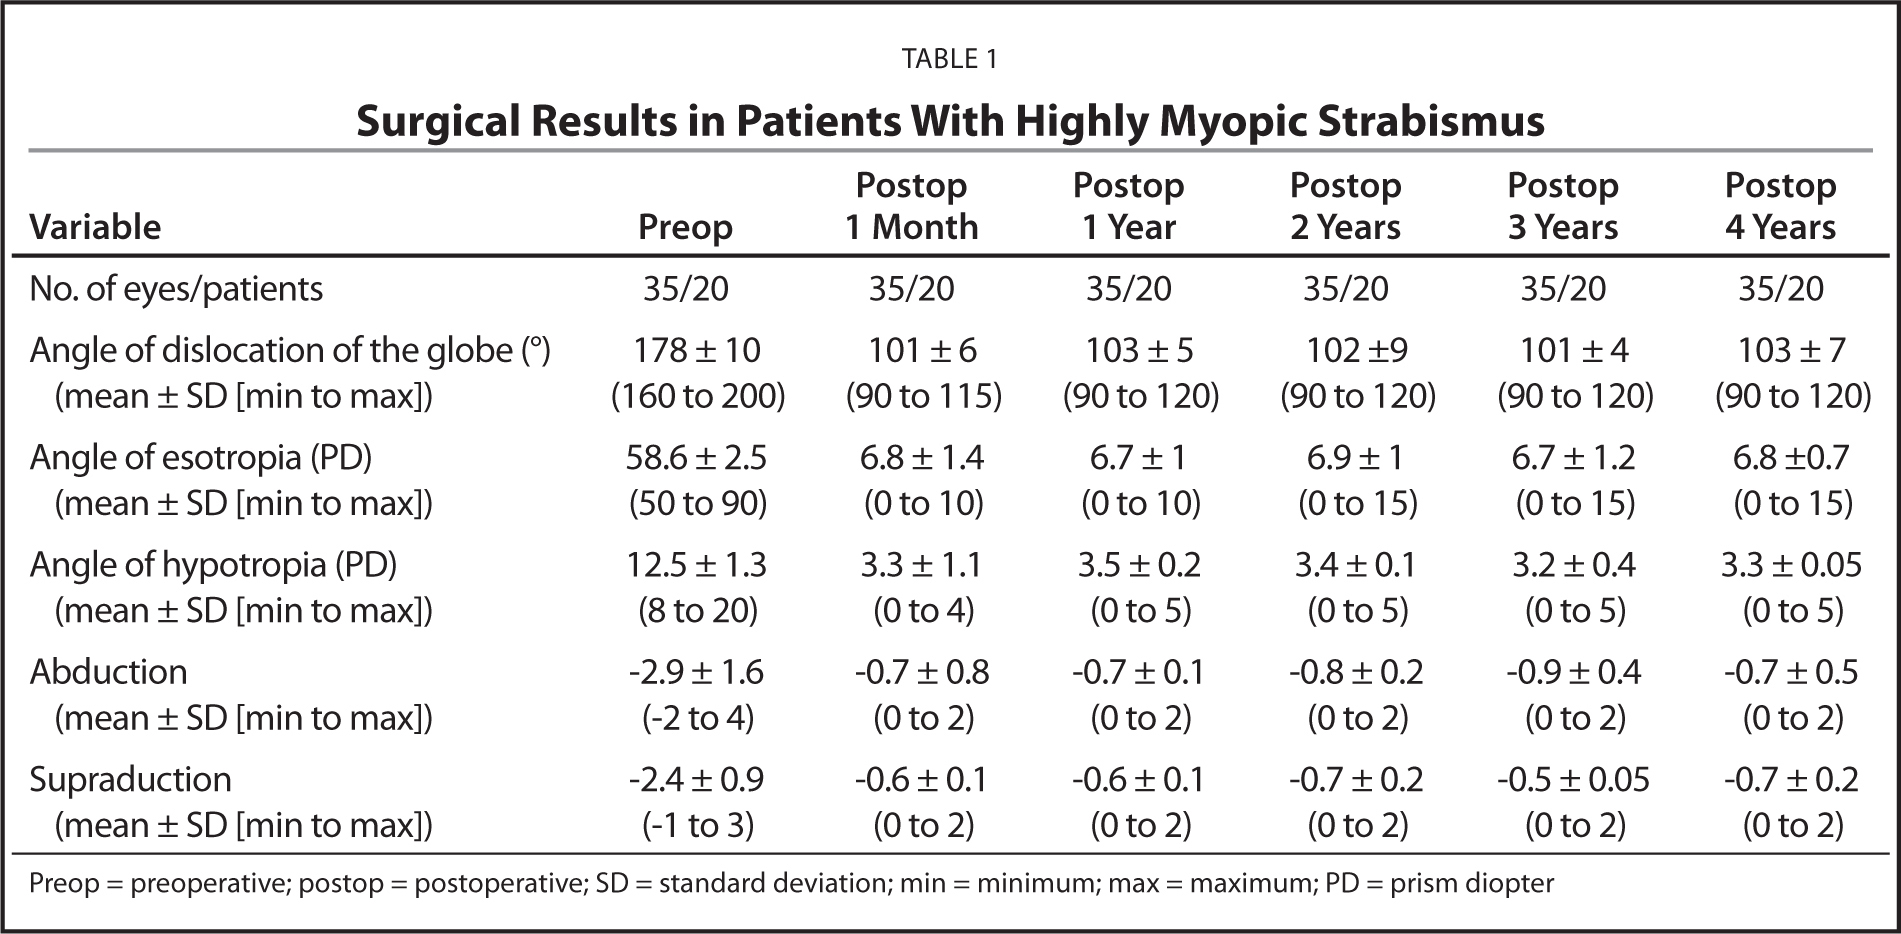 Surgical Results in Patients With Highly Myopic Strabismus